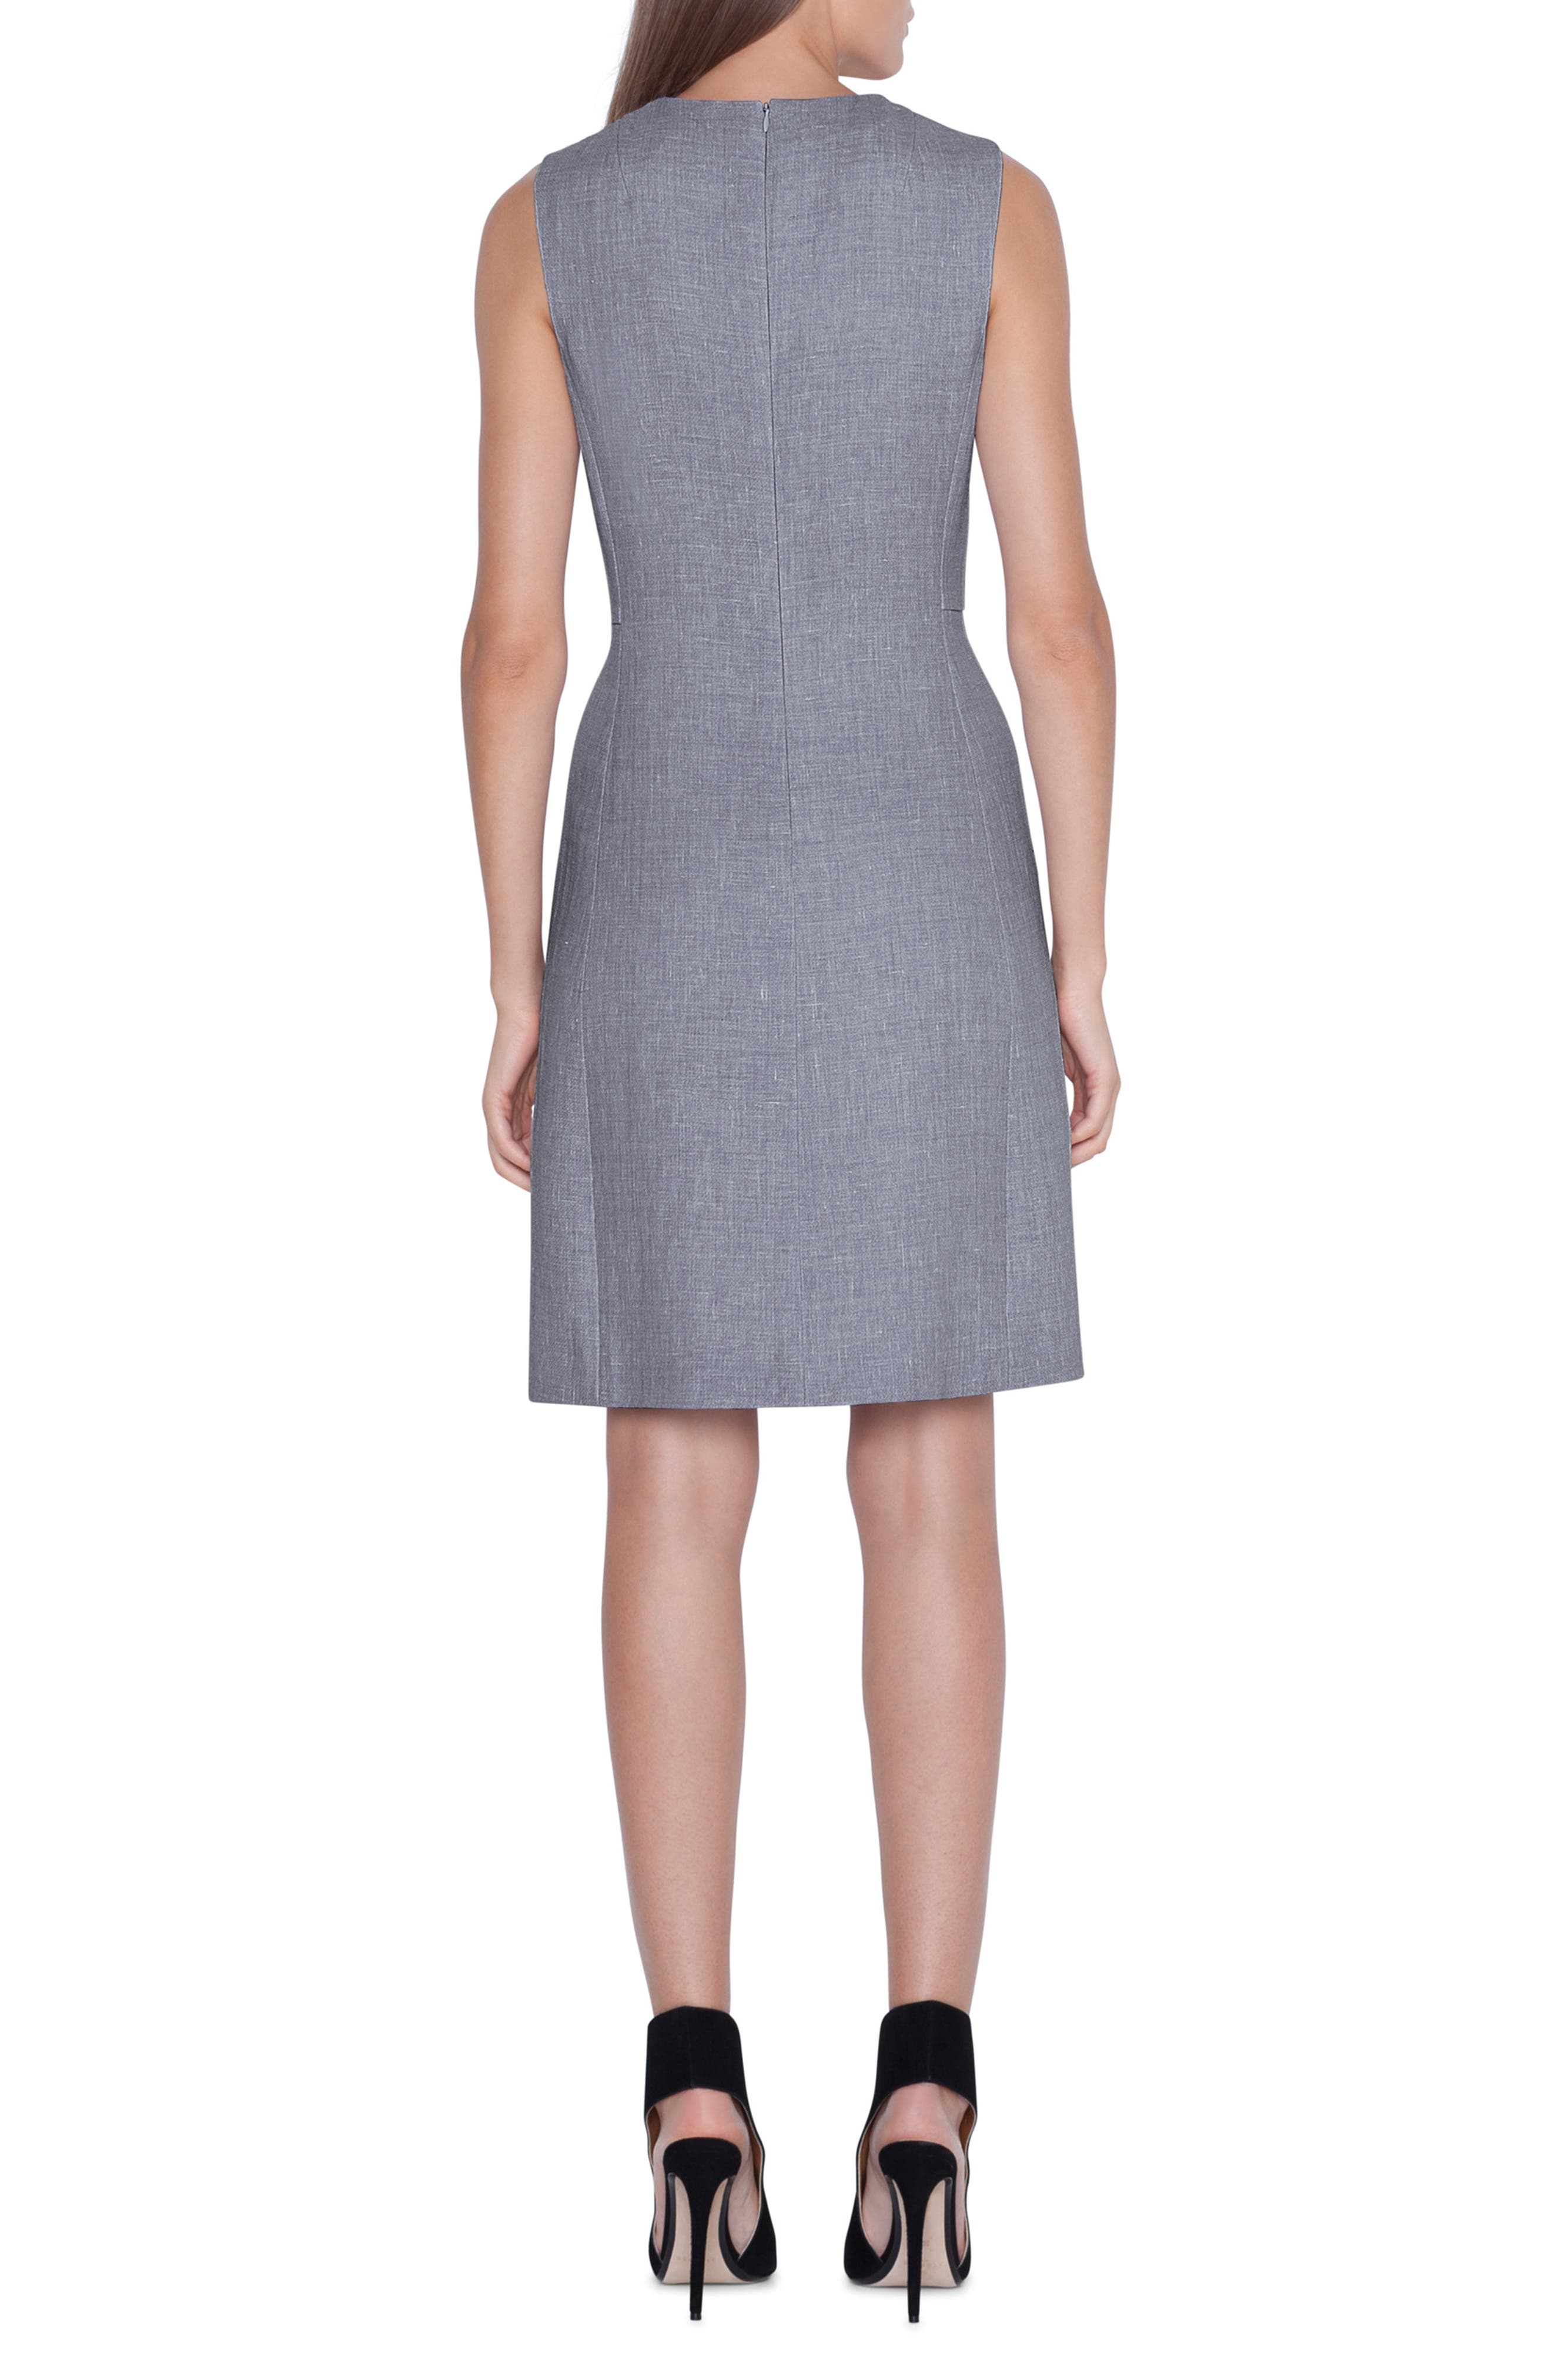 AKRIS,                             Linen & Wool Seamed Sheath Dress,                             Alternate thumbnail 2, color,                             TITAN